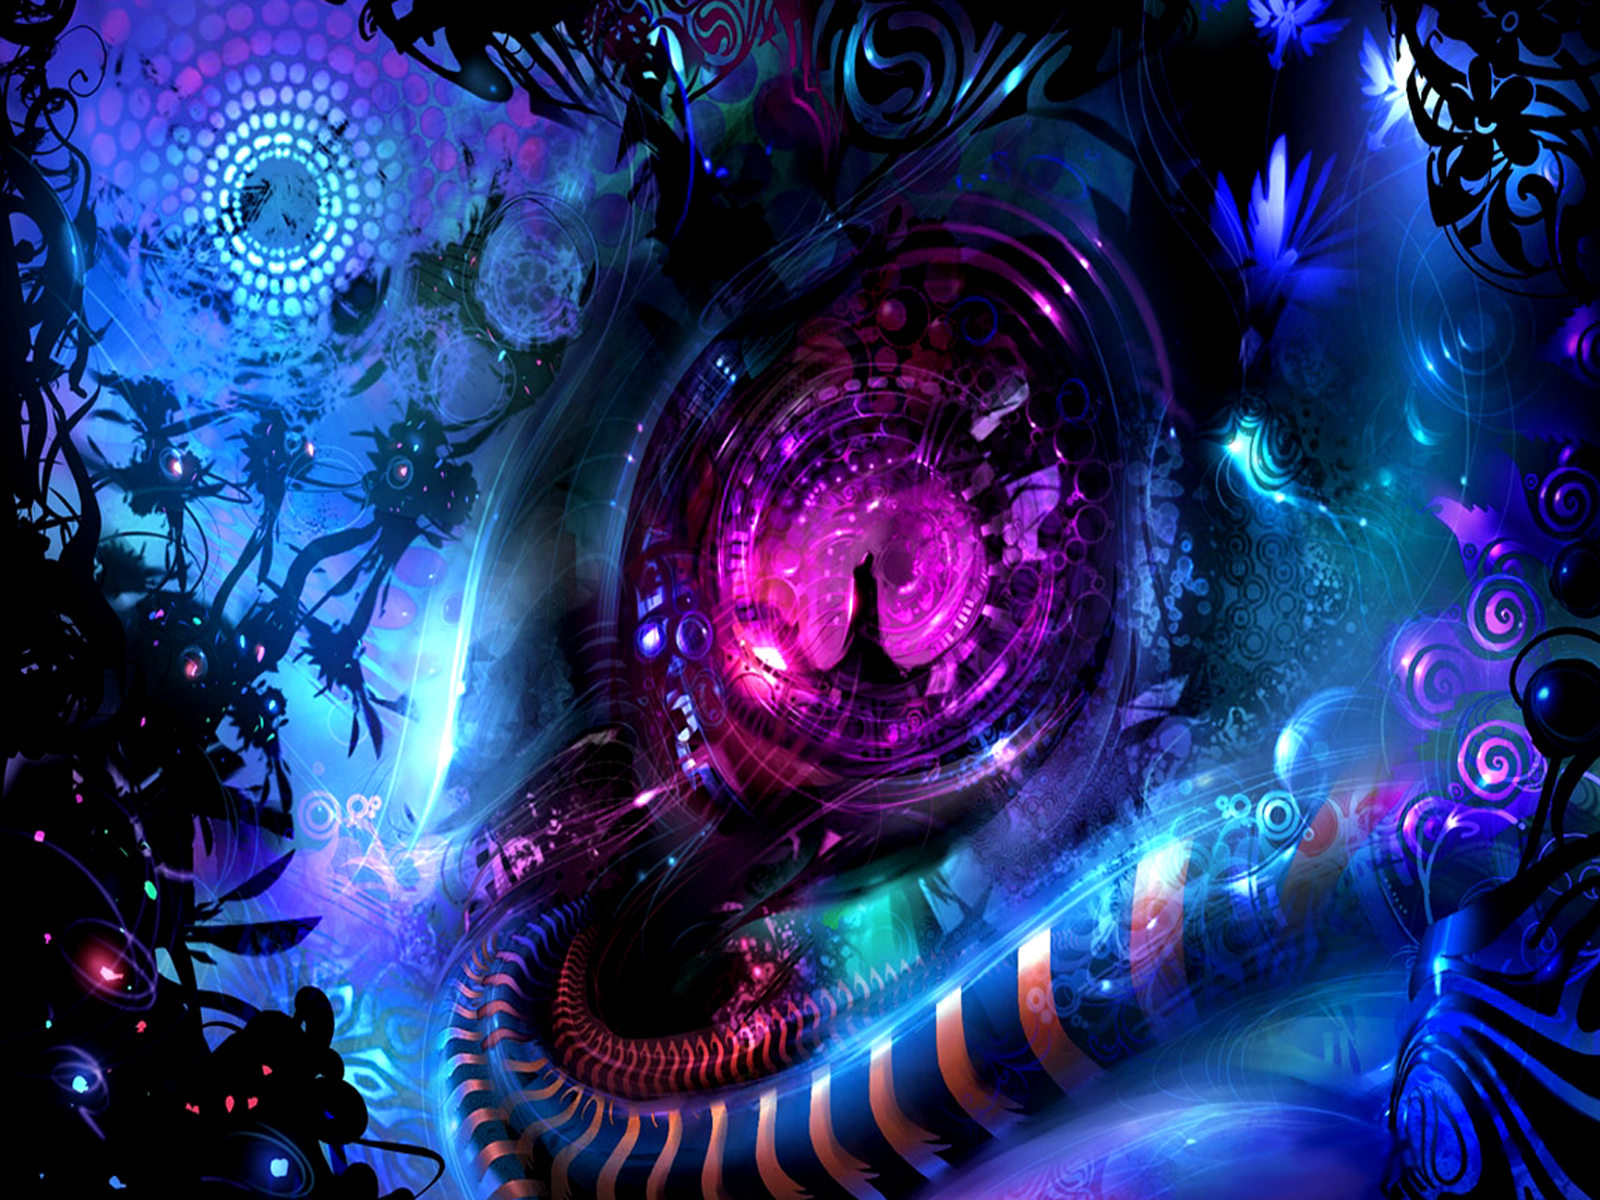 New Art Funny Wallpapers Jokes: Sci Fi Abstract Wallpapers ...